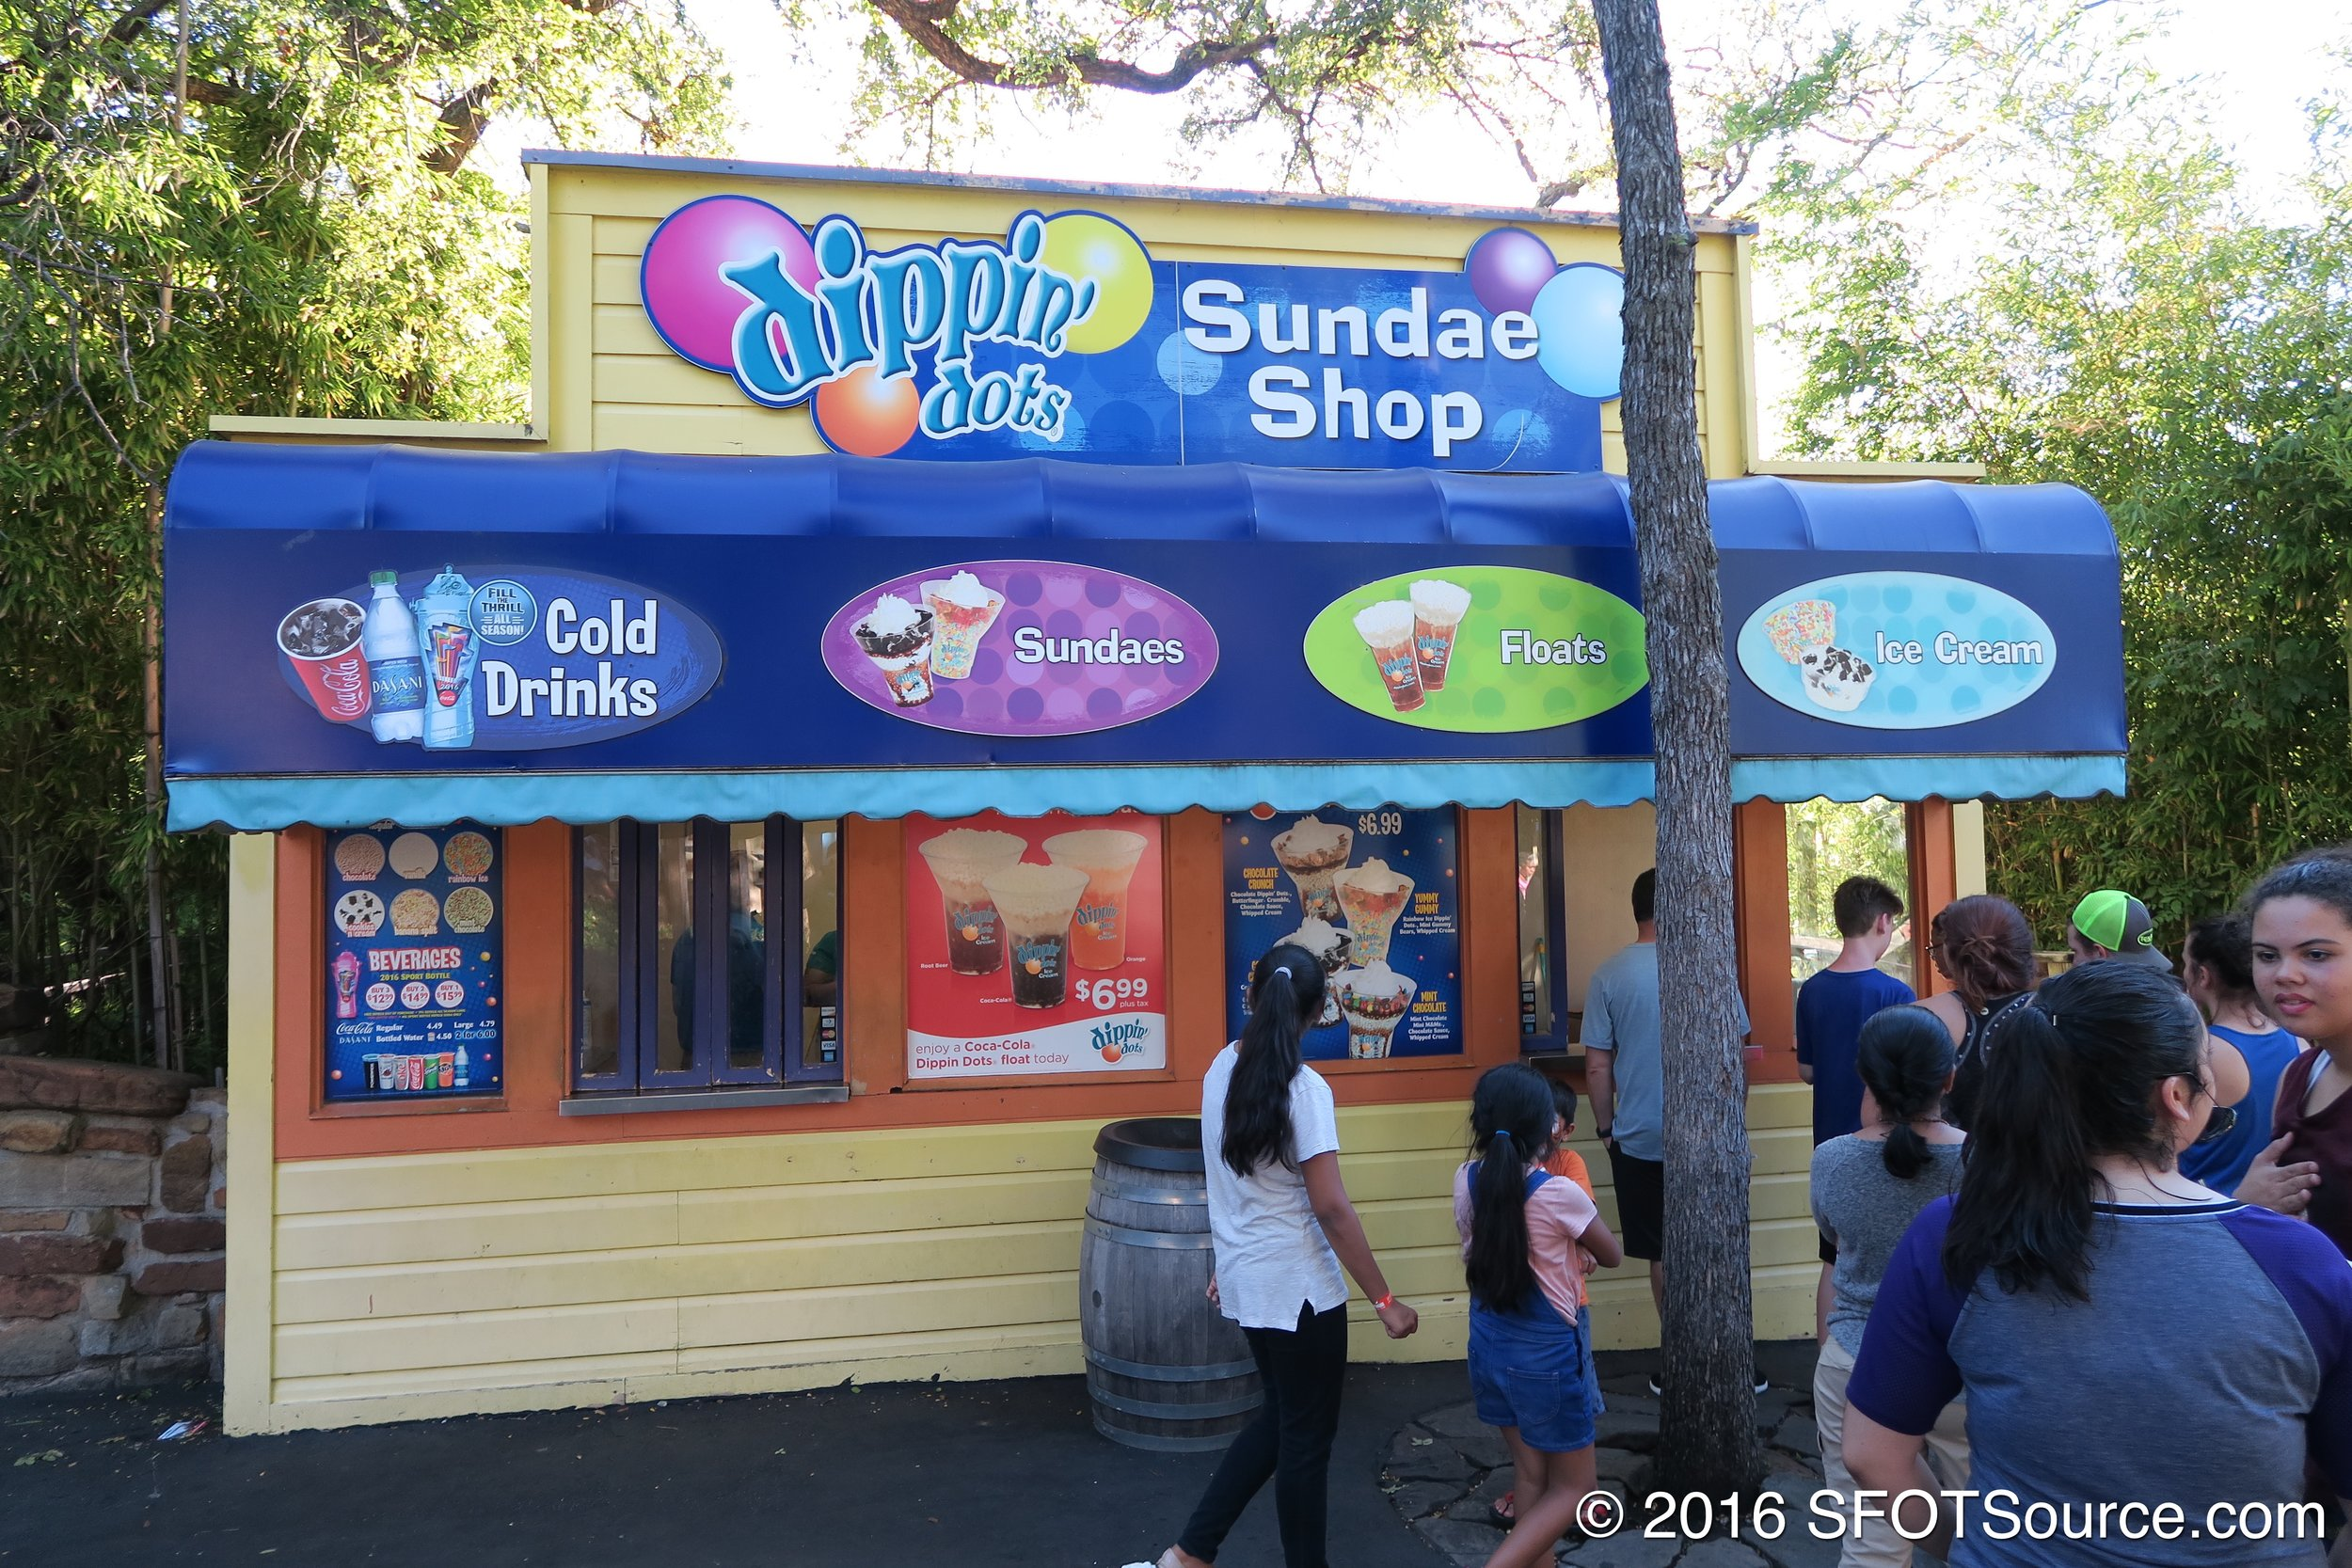 Dippin' Dots Sundae Shop is an outdoor food stand.